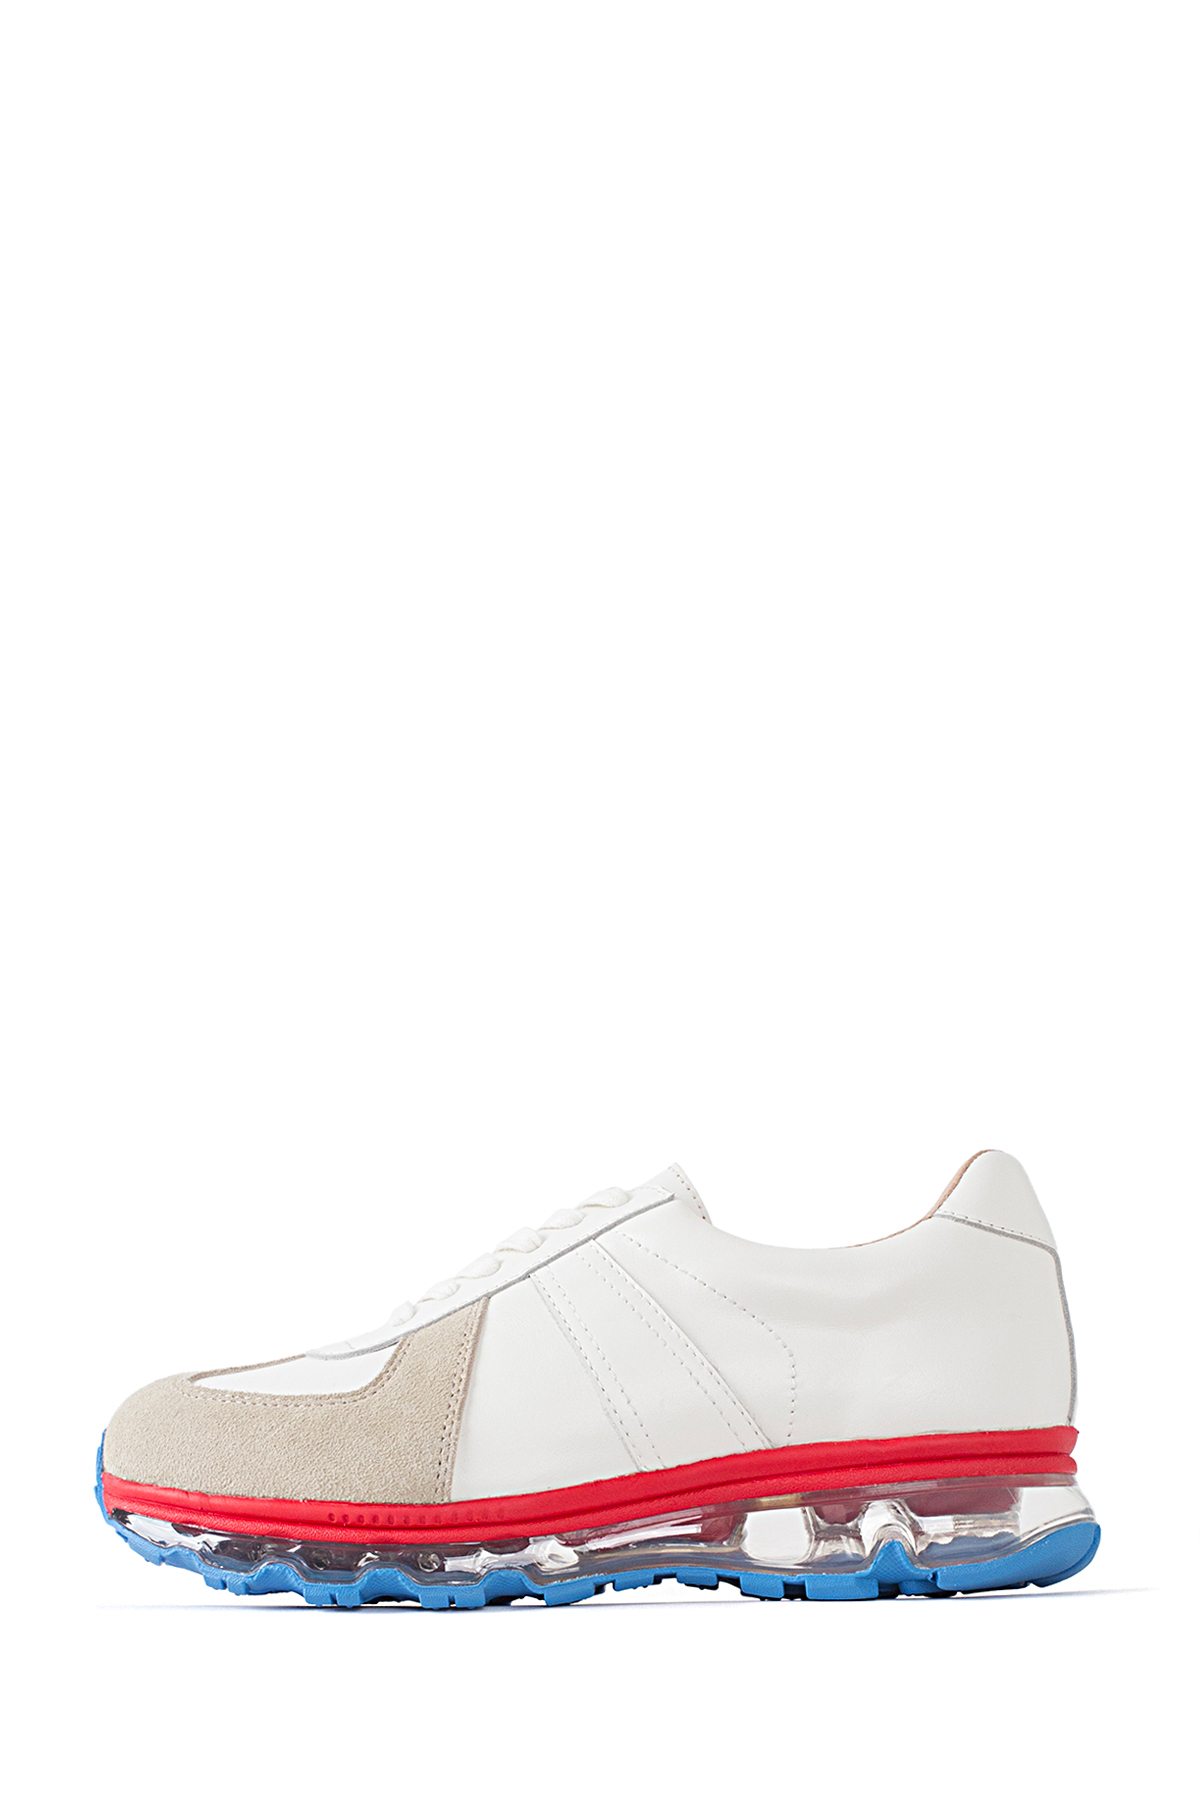 Tomo & Co. : German Trainer (White Leather / Trico Sole)